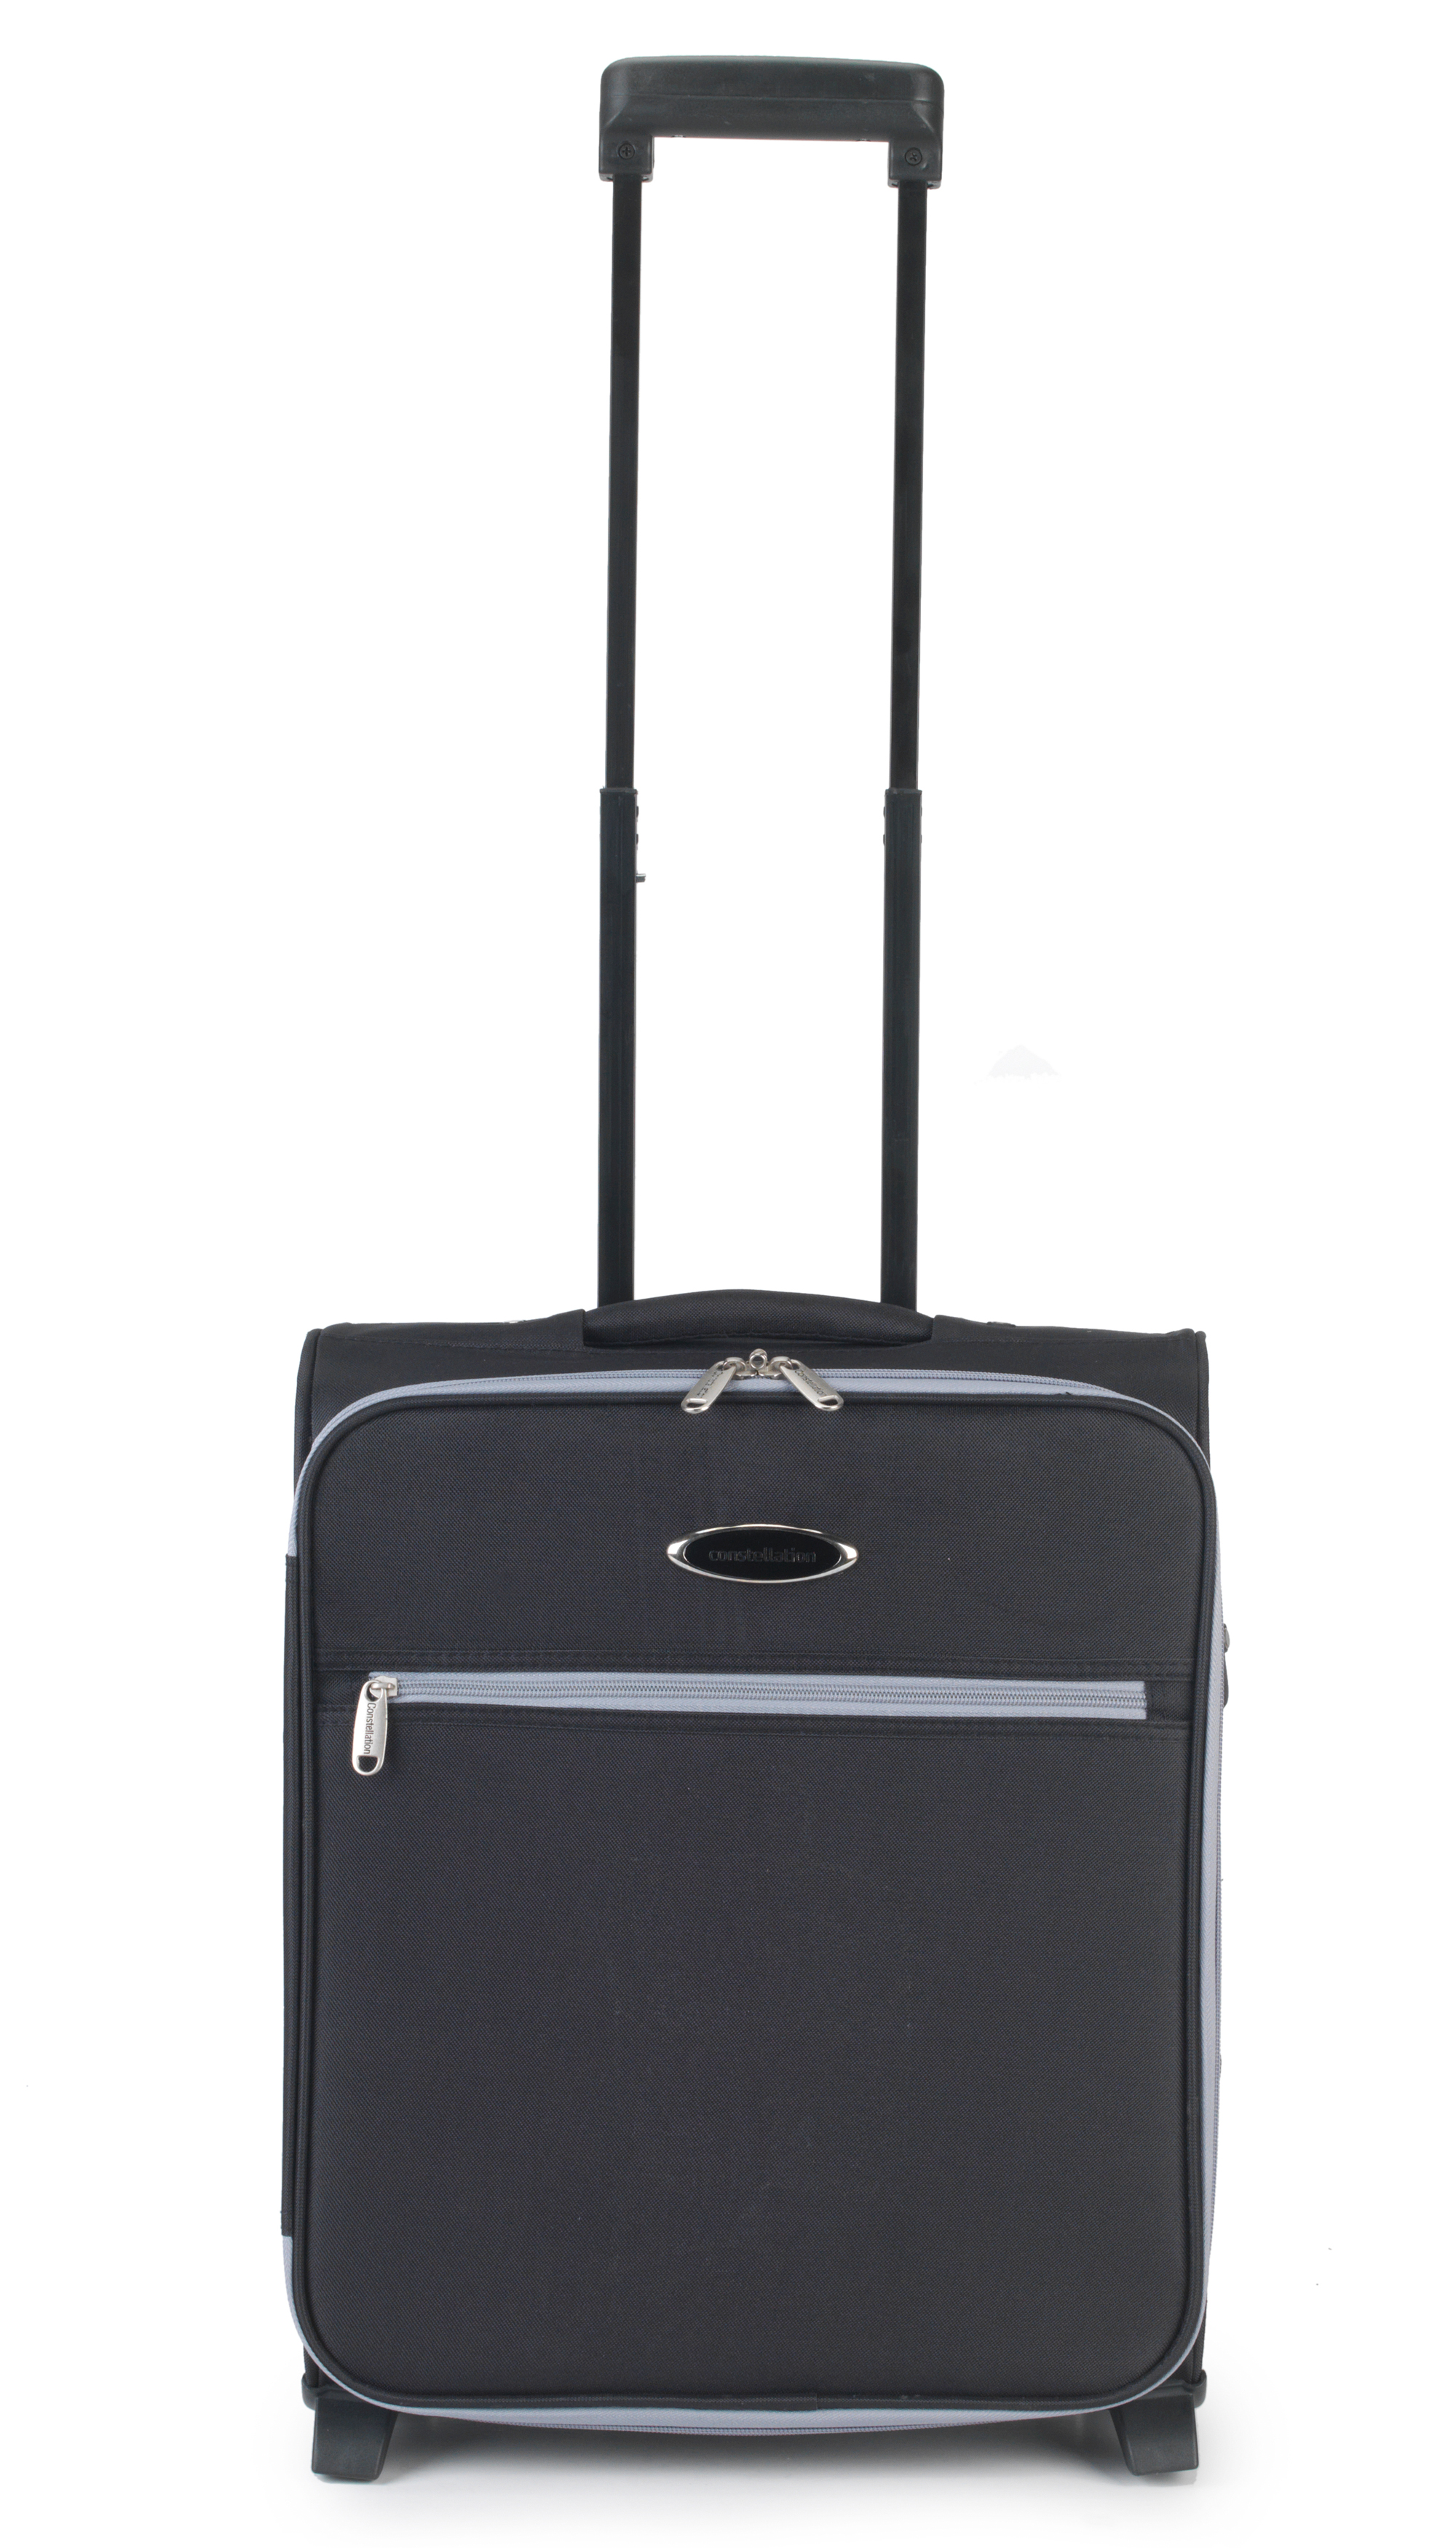 Constellation Lg00321bgstk Easyjet Roved Maximum Capacity Cabin Case Black Grey